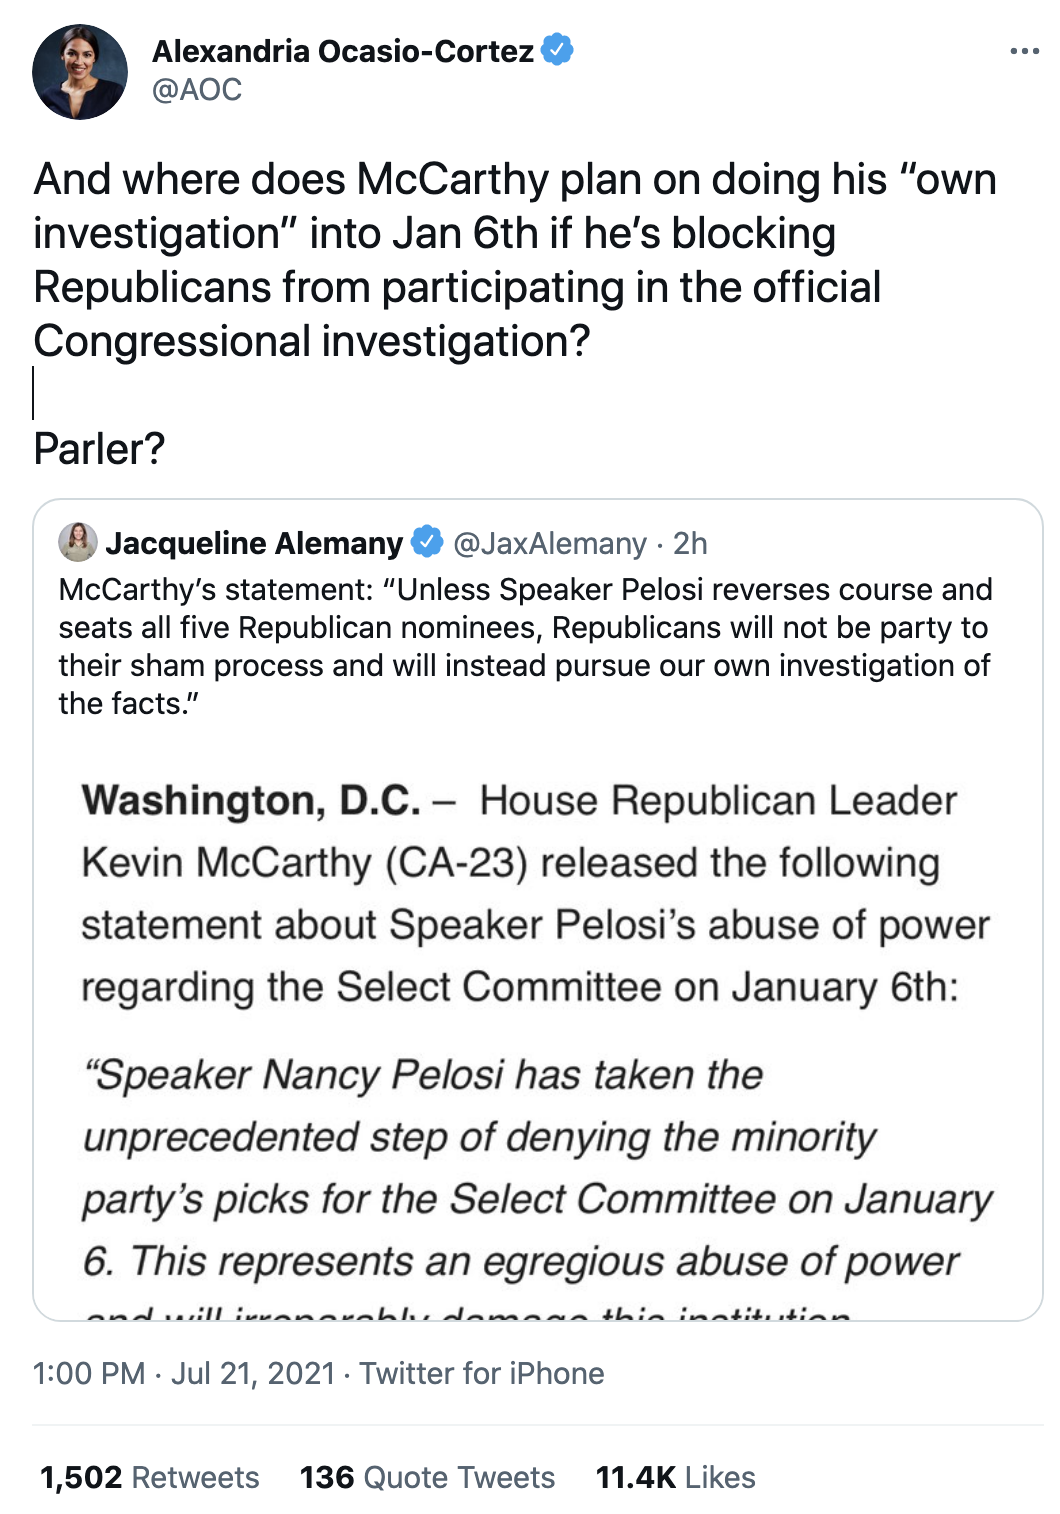 Screen-Shot-2021-07-21-at-2.48.06-PM Ocasio-Cortez Clowns On Kevin McCarthy's Investigation Threat Corruption Featured National Security Politics Top Stories